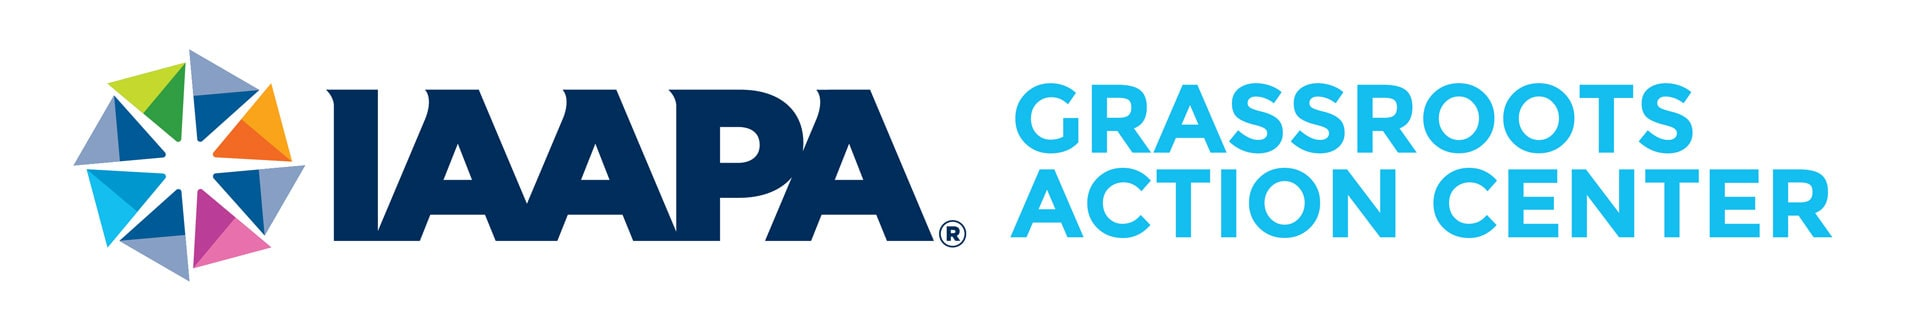 IAAPA Grassroots Action Center